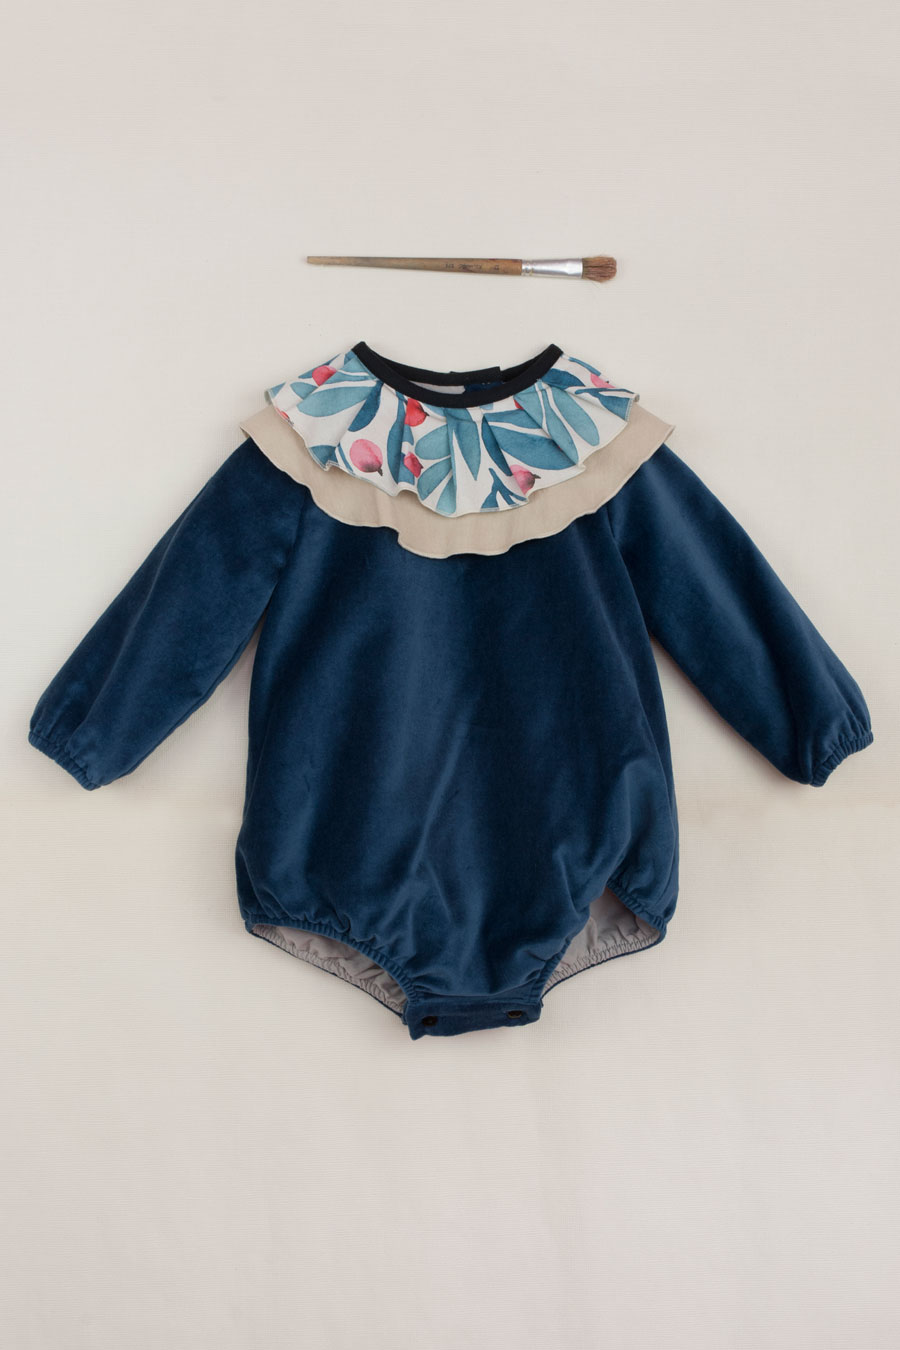 Mod.4.2 - Blue Ruffled Romper Suit | AW18.19-Mod.4.2 - Blue Ruffled Romper Suit